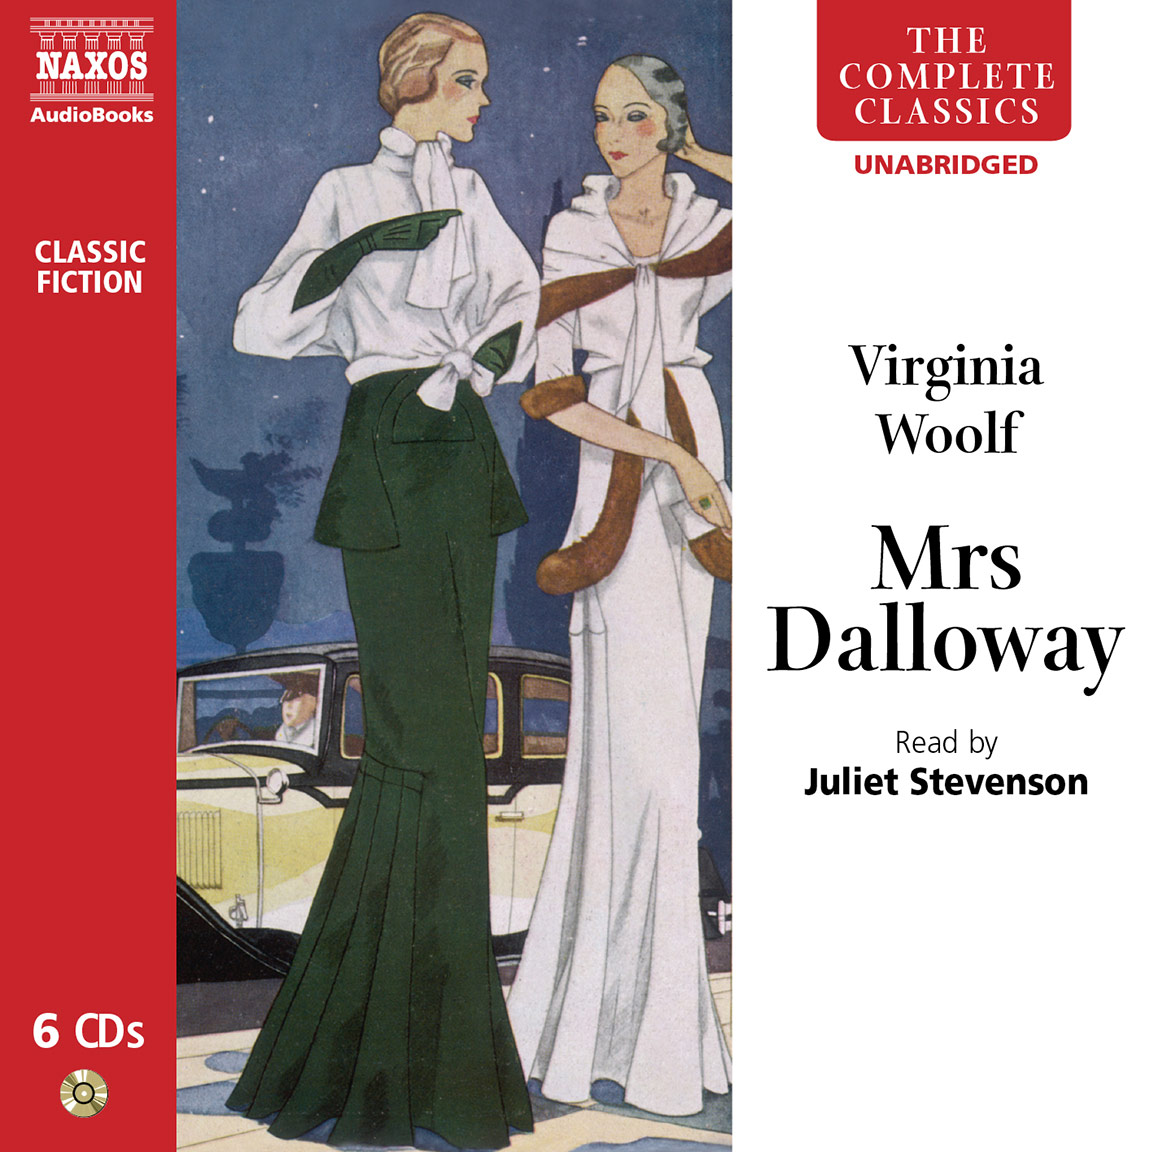 Mrs Dalloway (unabridged)